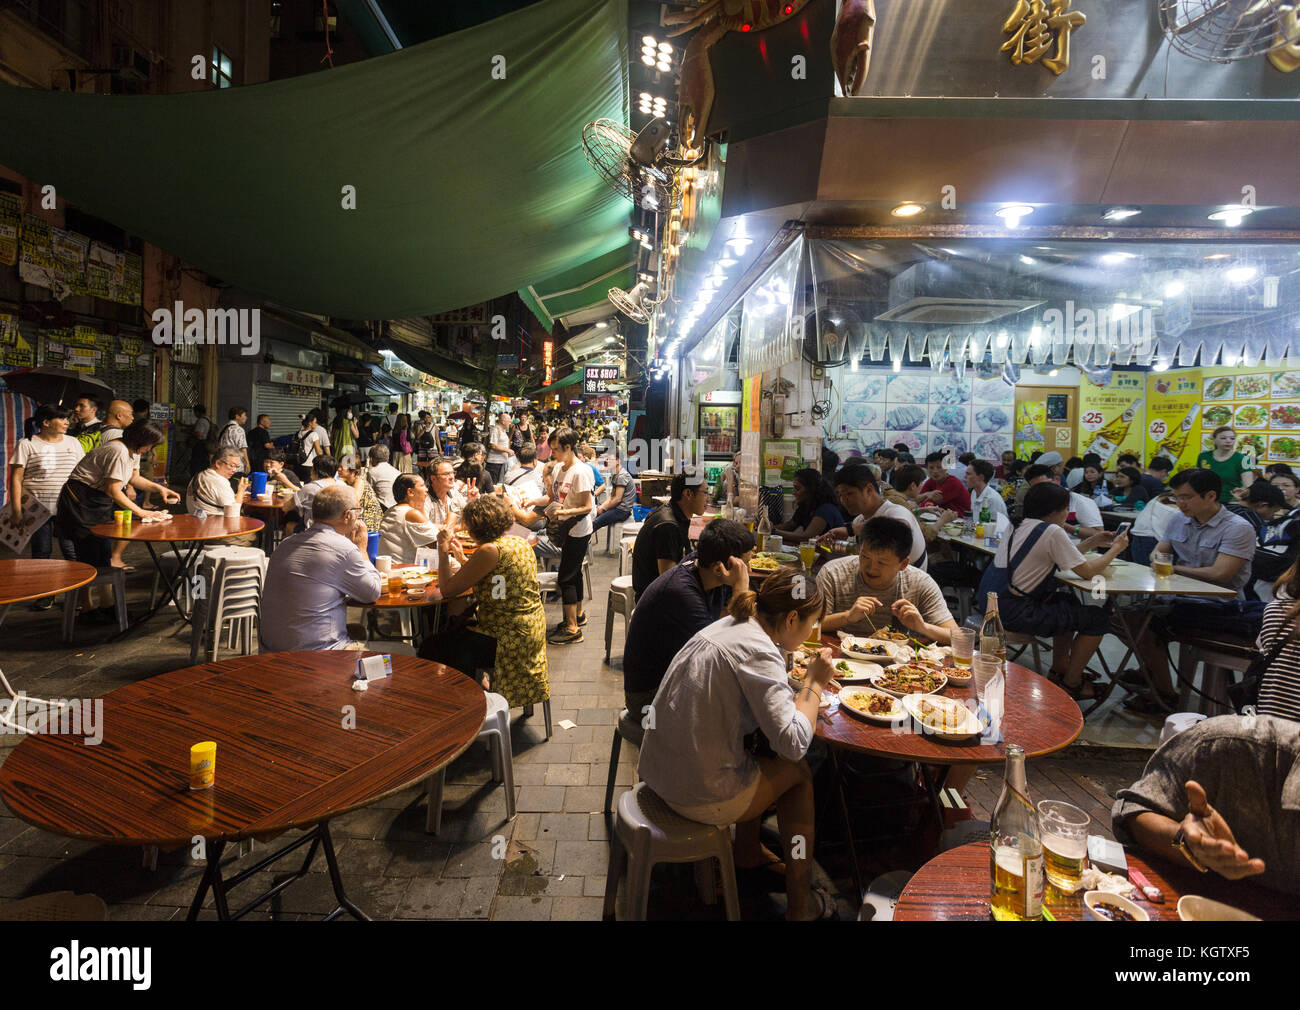 HONG KONG, CHINA - JUNE 16, 2017: Tourists and local dine in a restaurant in the streets of Kowloon near the famous - Stock Image